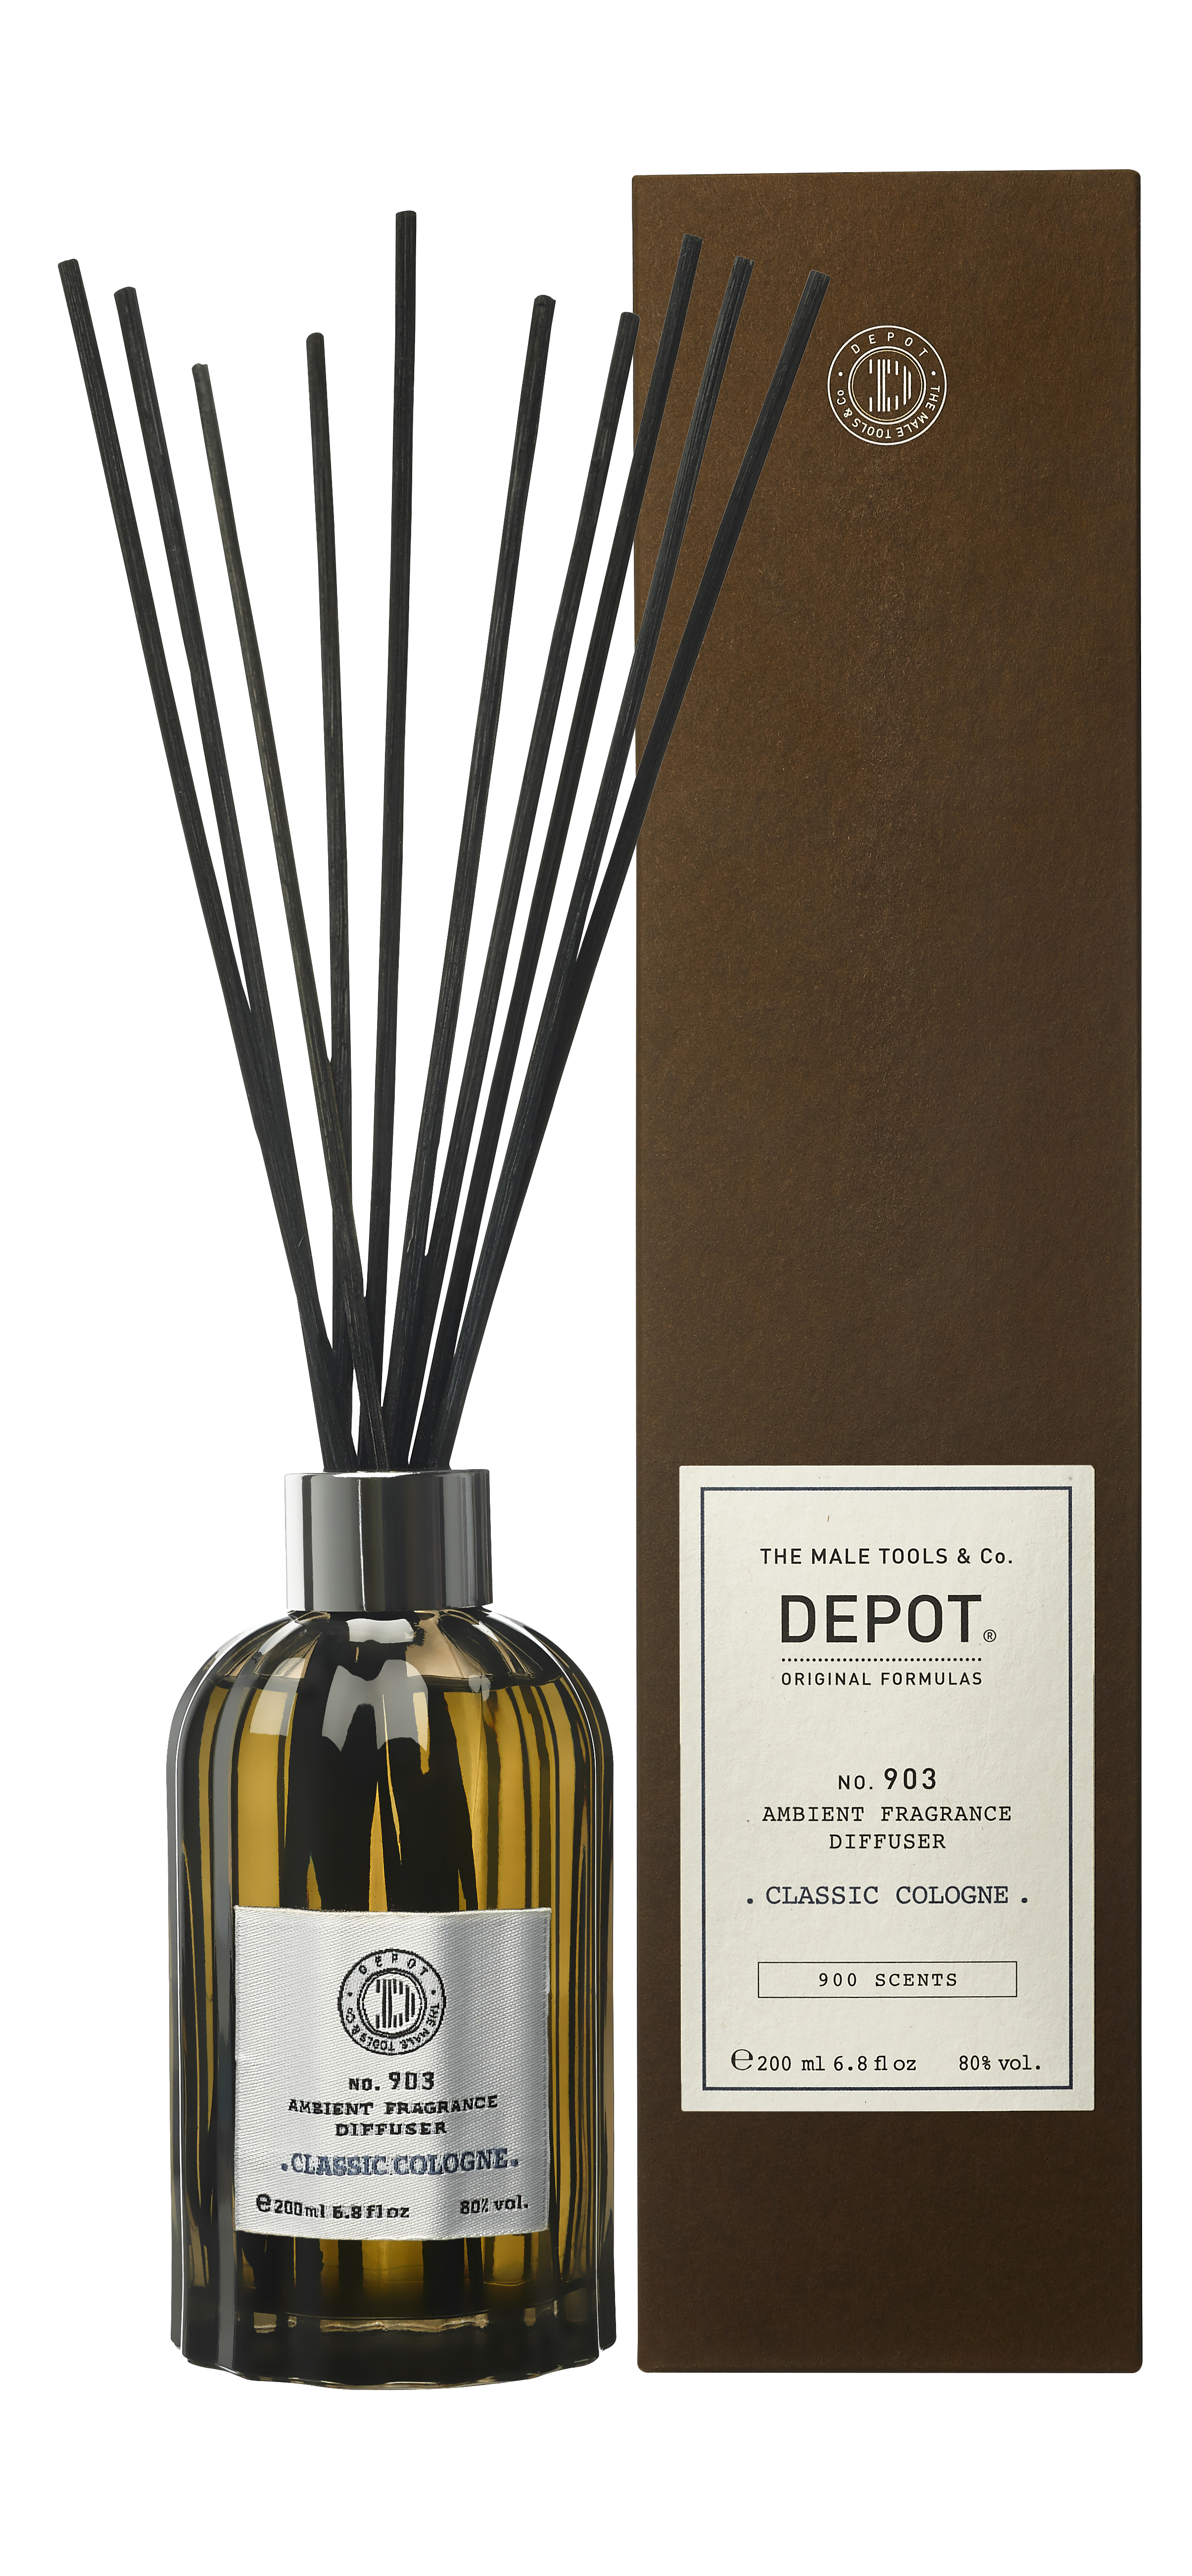 Depot - No. 903 Ambient Fragrance Diffuser - Classic Cologne